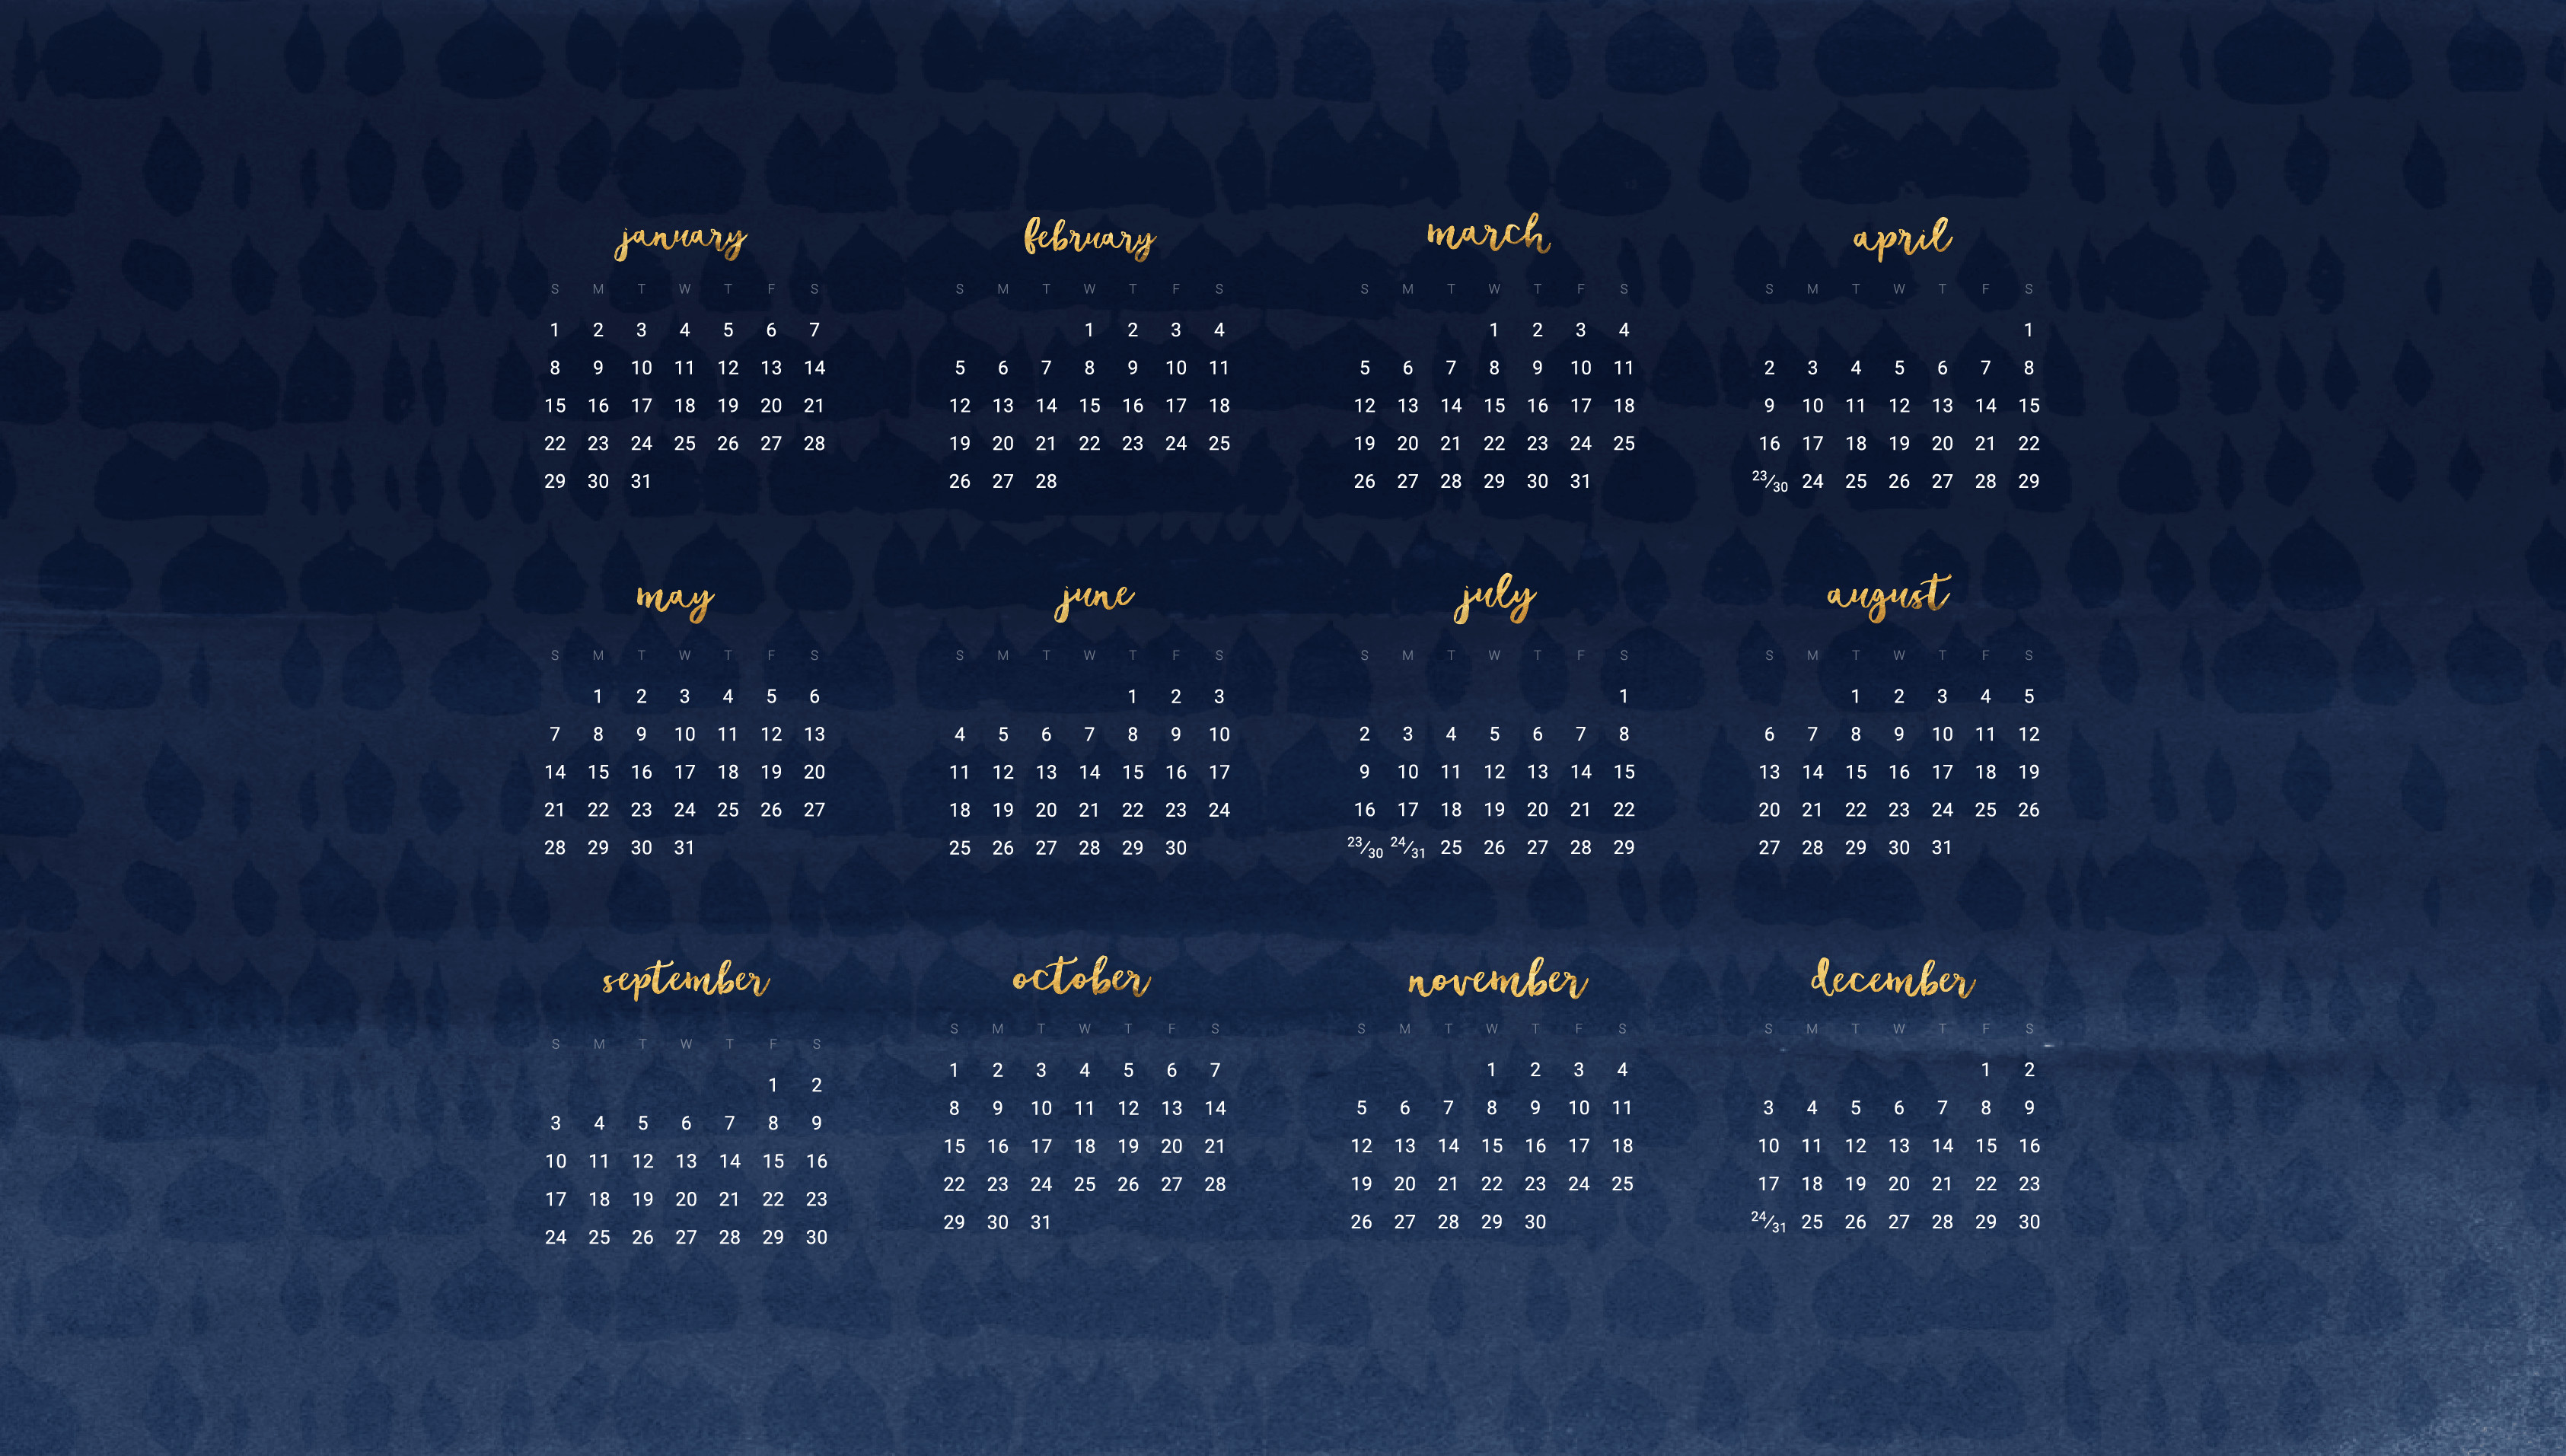 Calendar Wallpaper Pc : Wallpaper calendars for  images